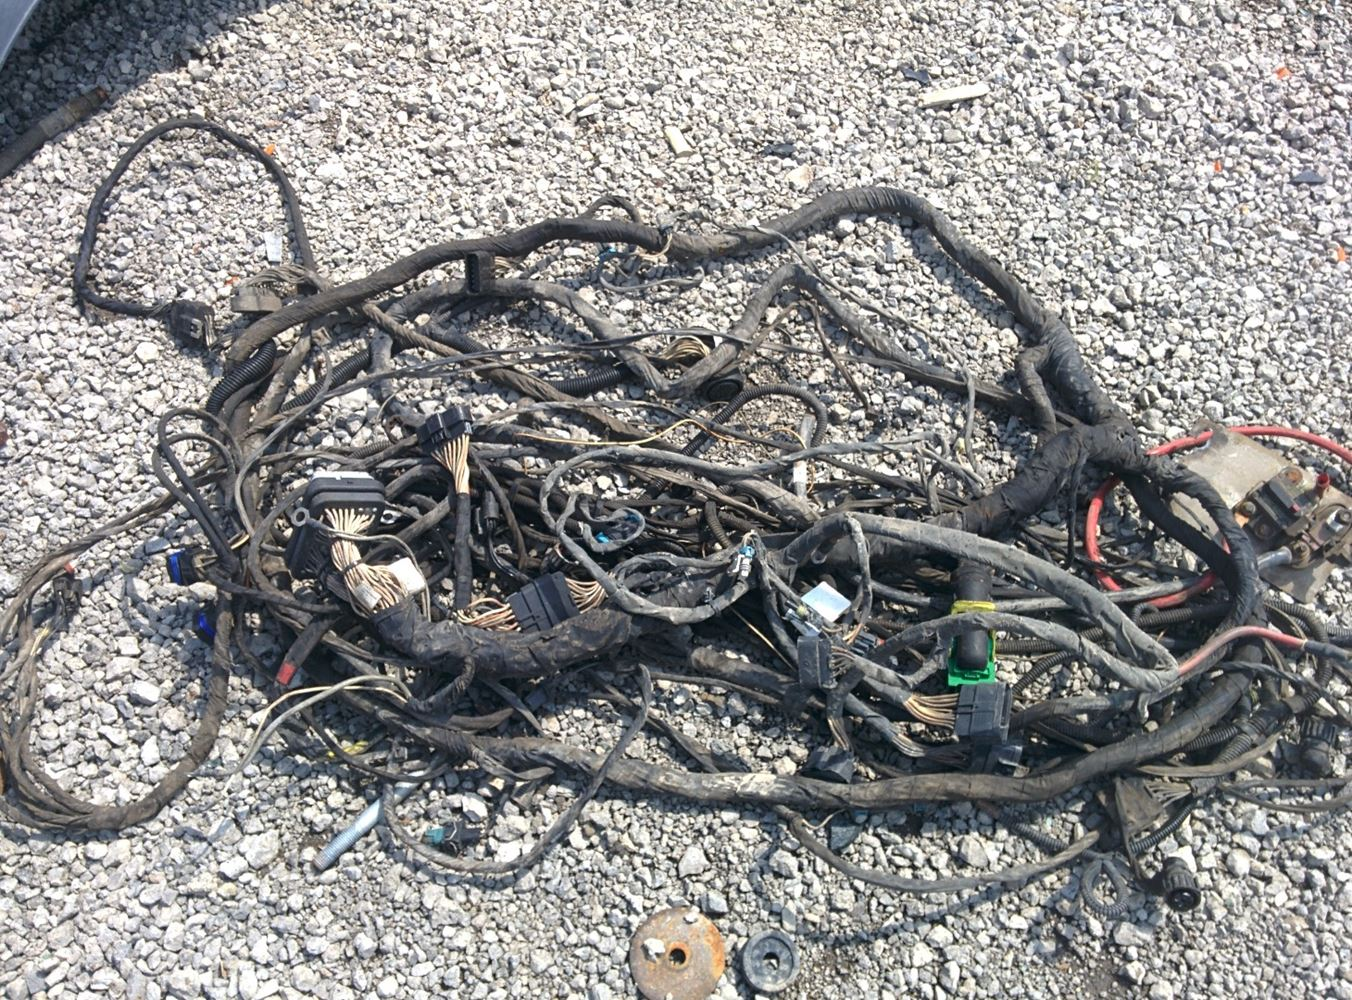 Mack Engine Wiring Harness Diagrams 2008 Cxu613 Stock Mk 0423 47 Harnesses 92 Truck Ch613 Compartment